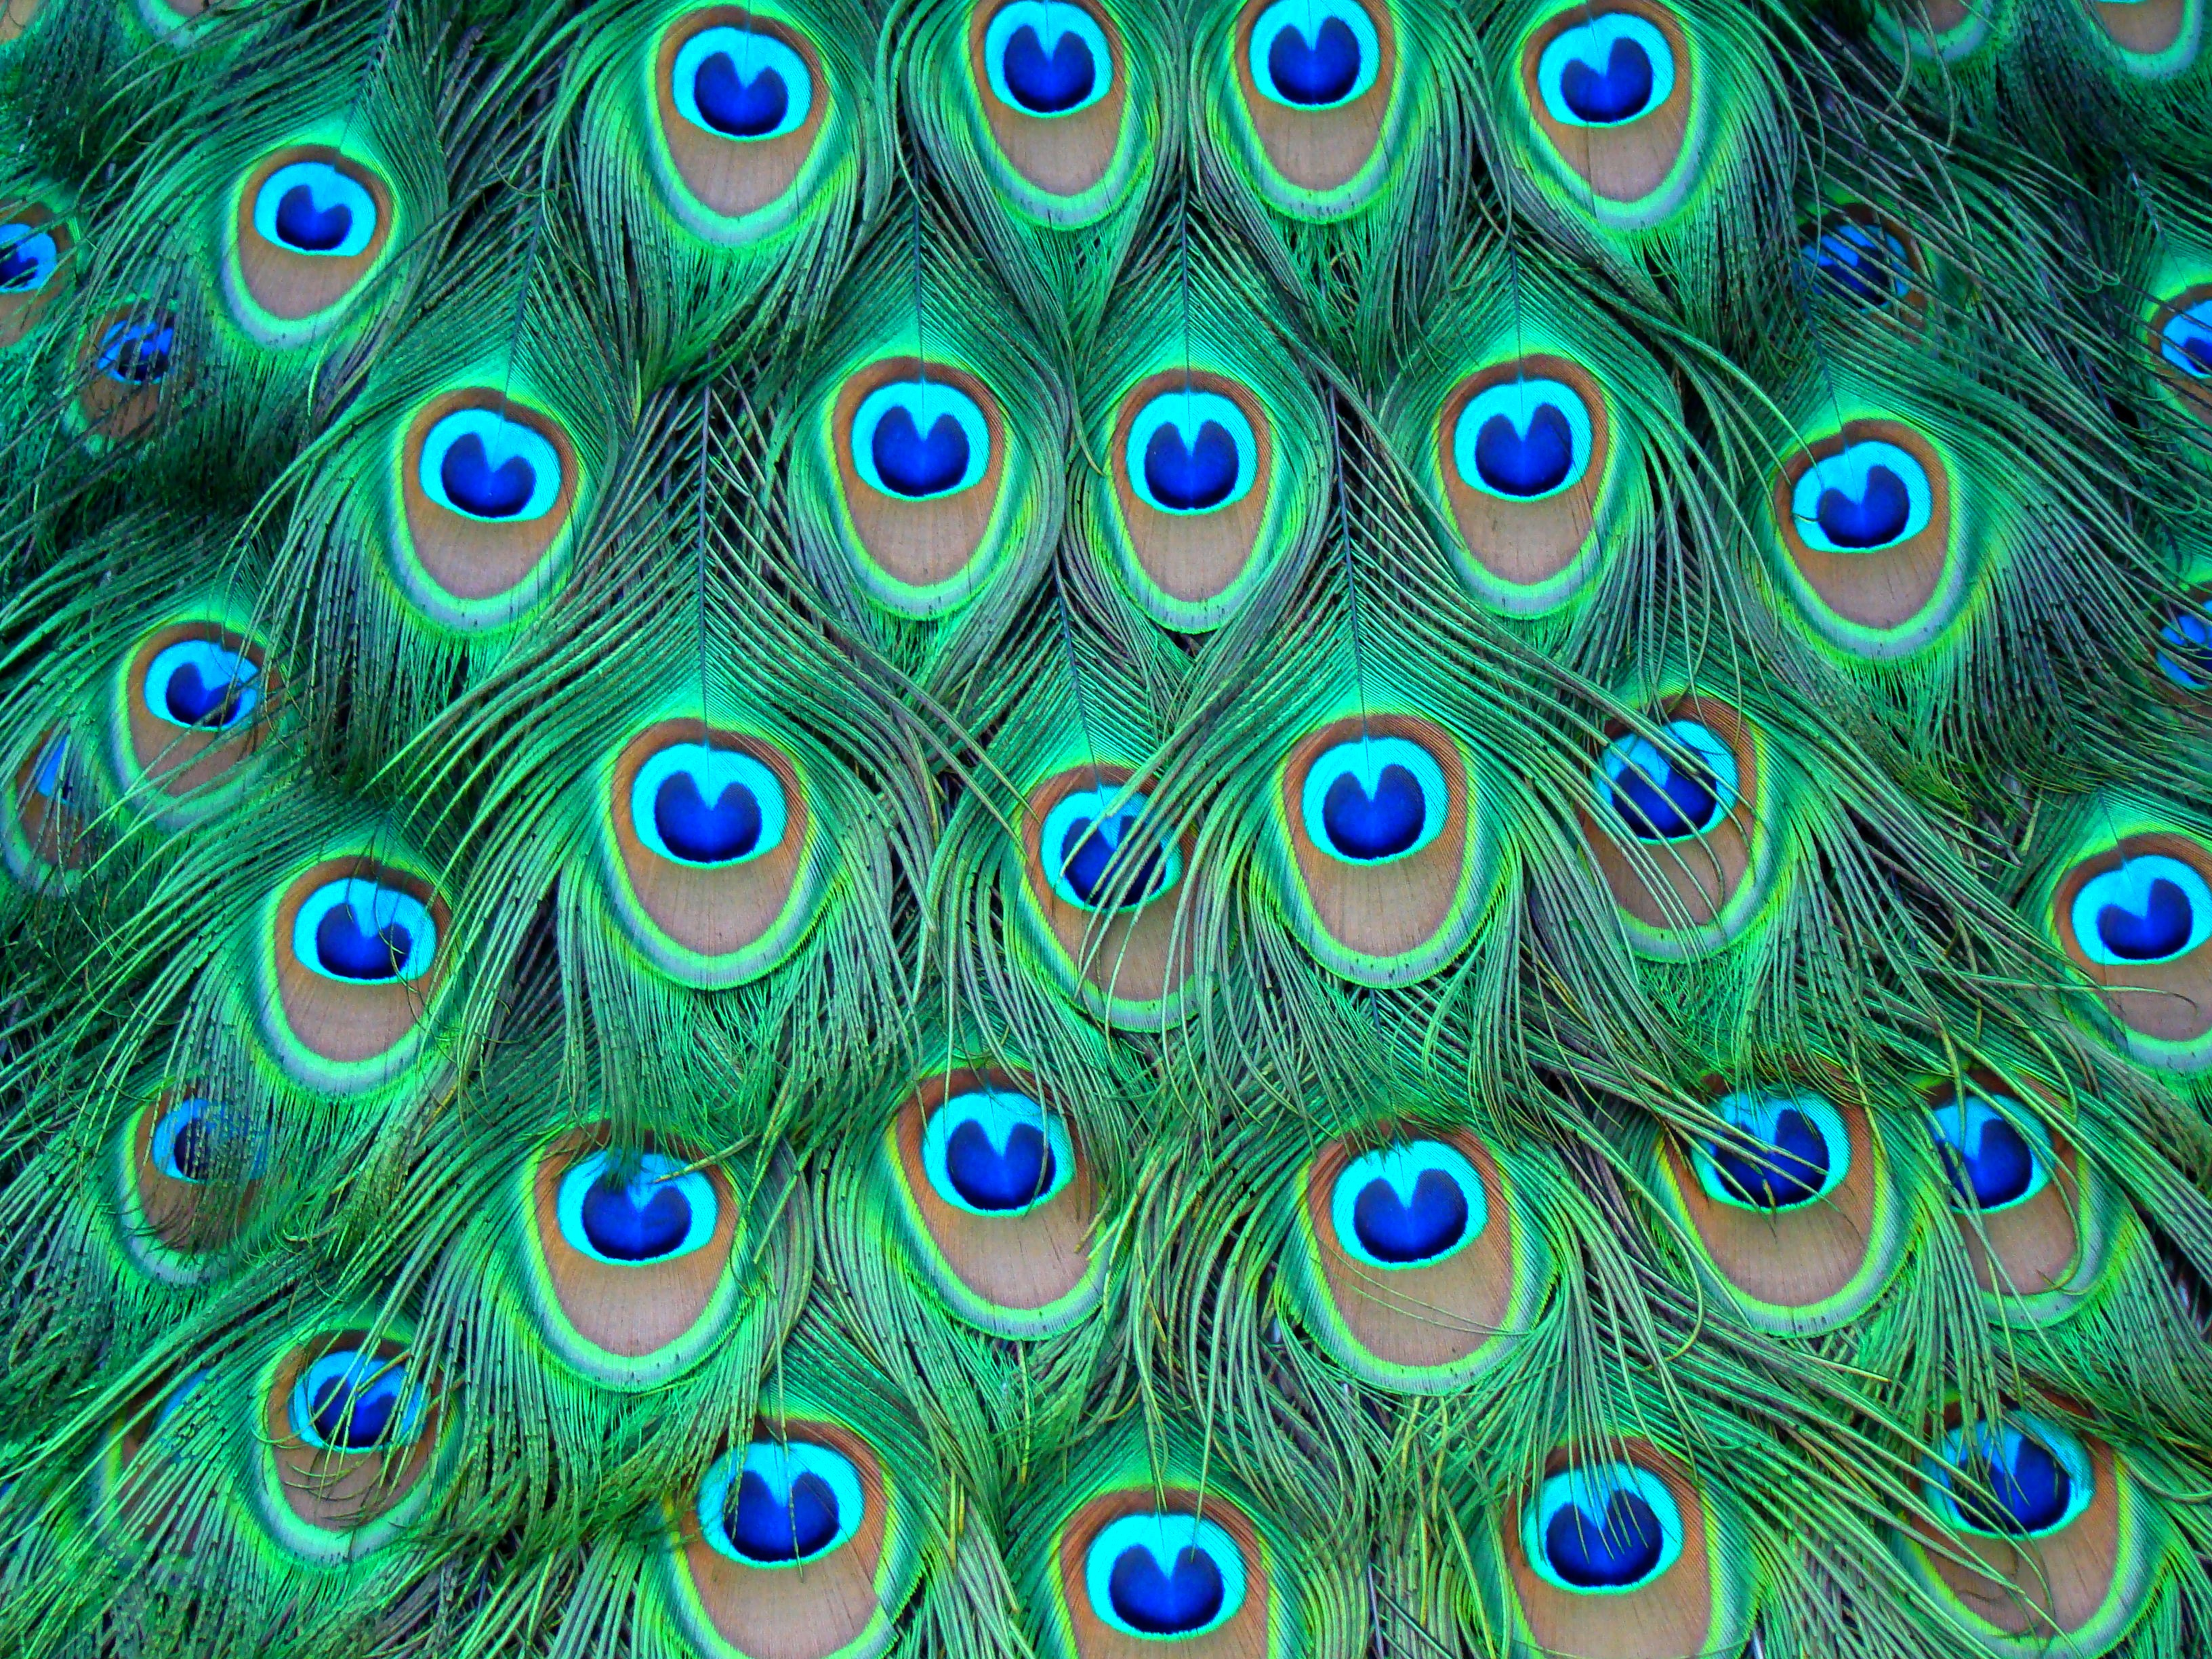 Images of Peacock | 3264x2448